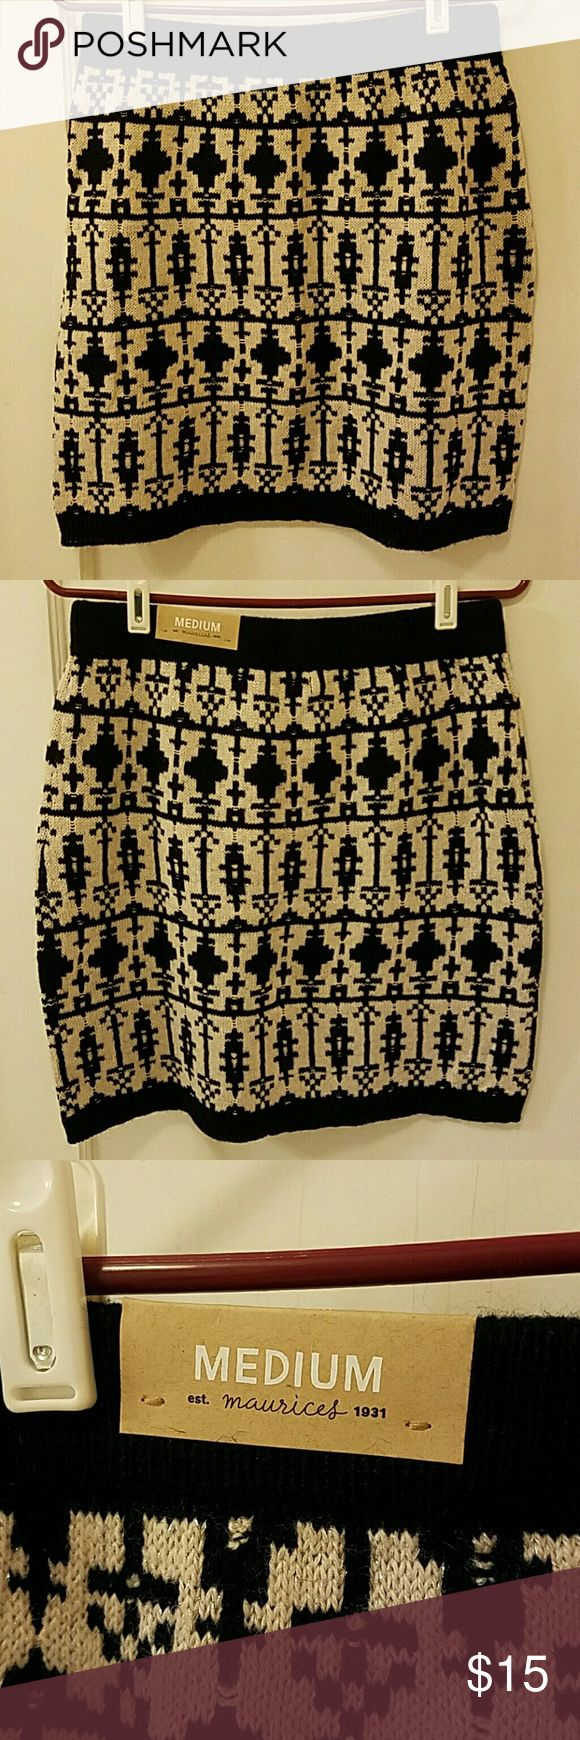 Aztec print skirt Never worn, new with tags, Aztec print  knit skirt with a light shimmer to the fabric. Size medium, slightly loose fitting. Maurices Skirts